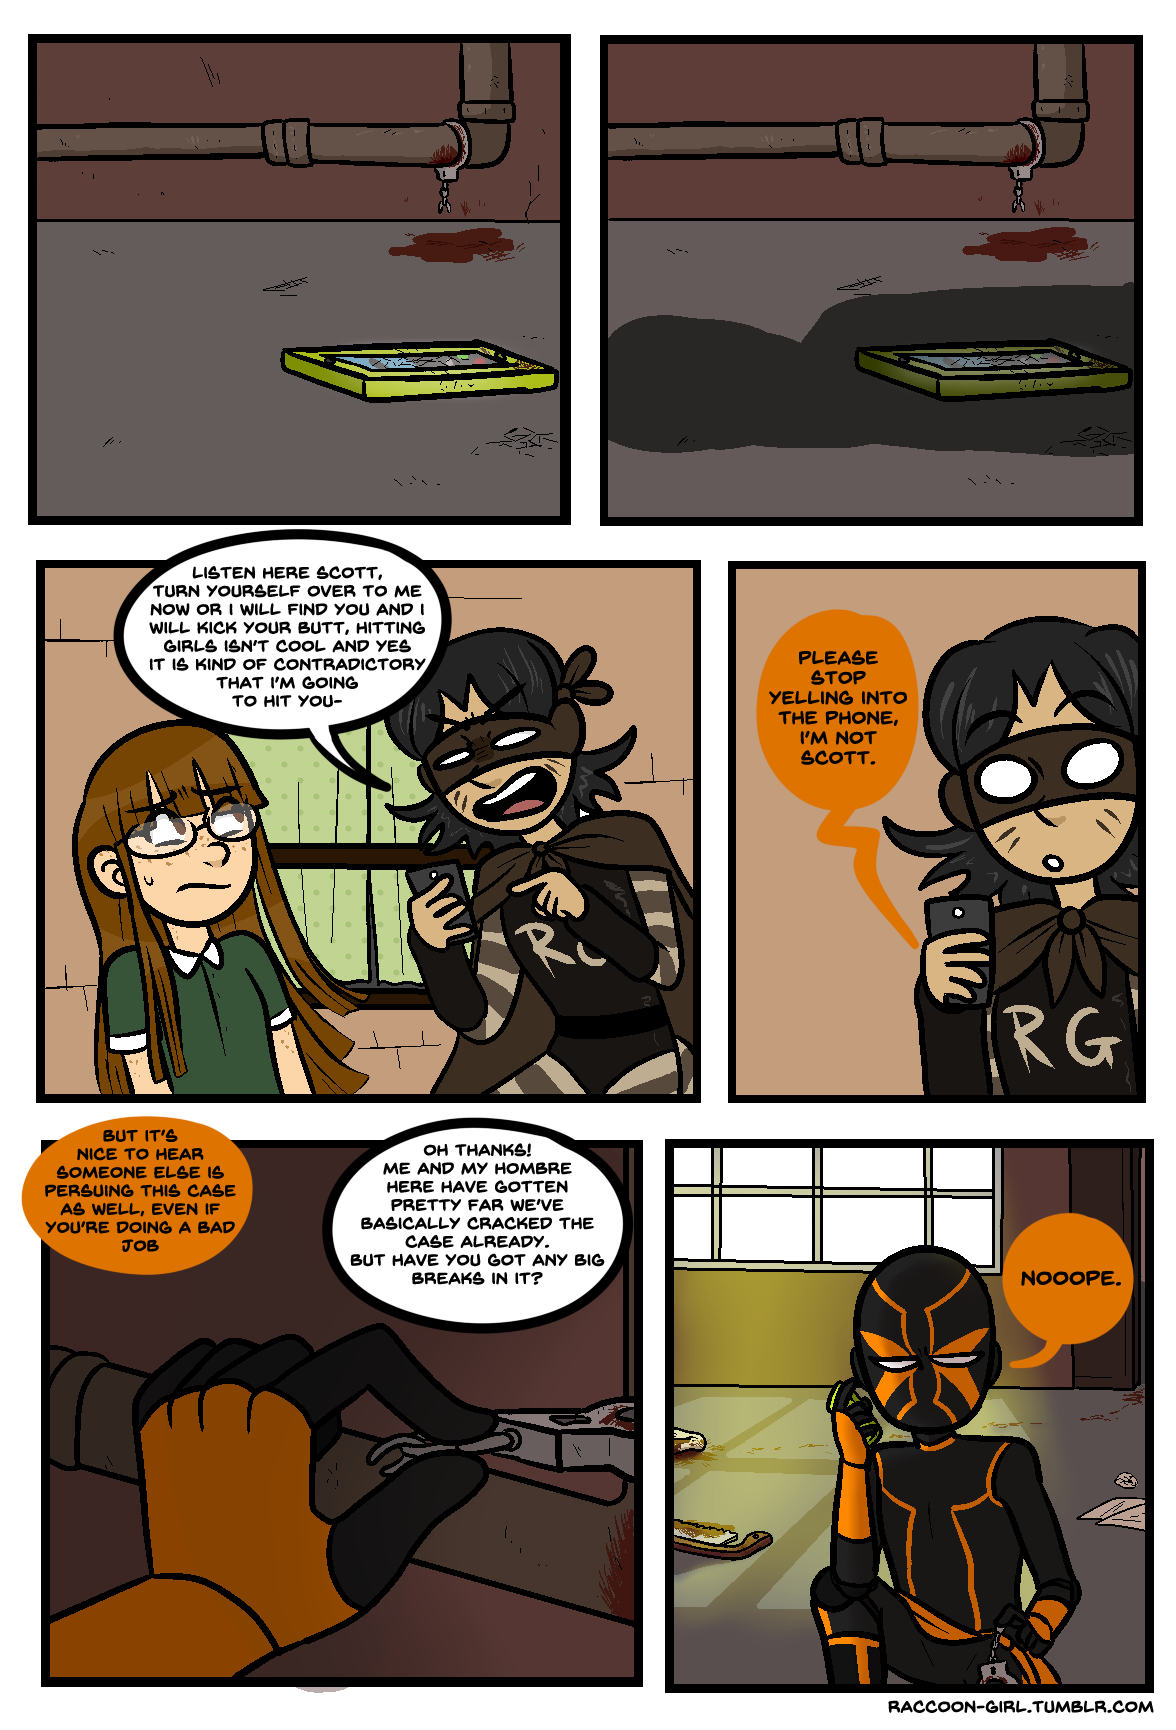 raccoongirl-page44